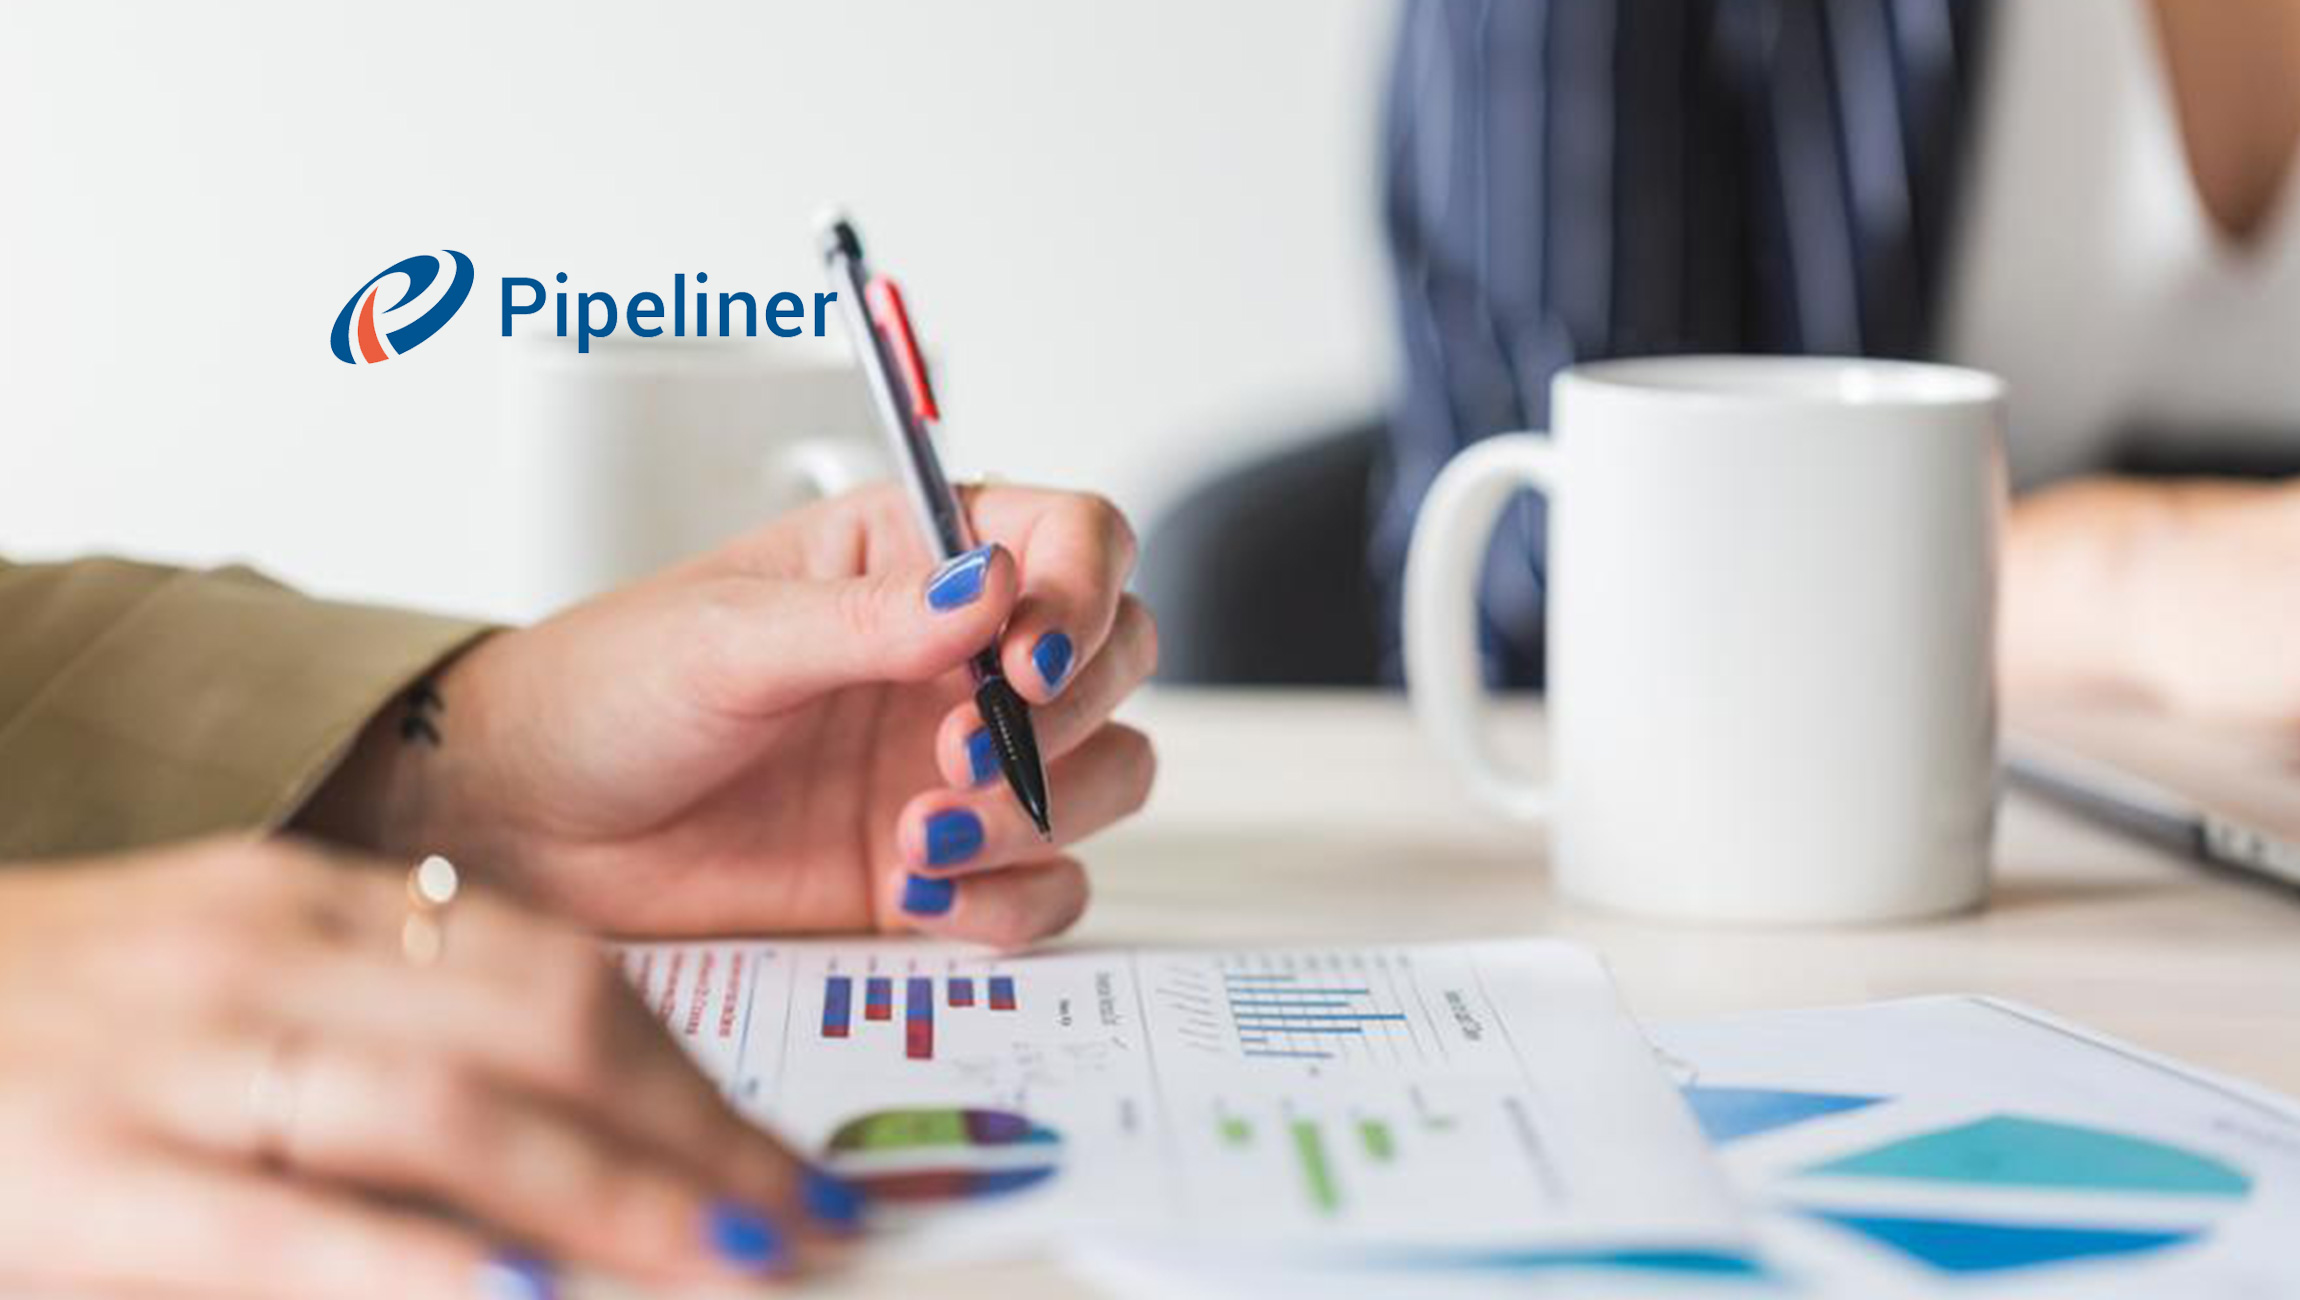 Pipeliner Partners with Colleges to Launch Technology in Sales Higher Education Council